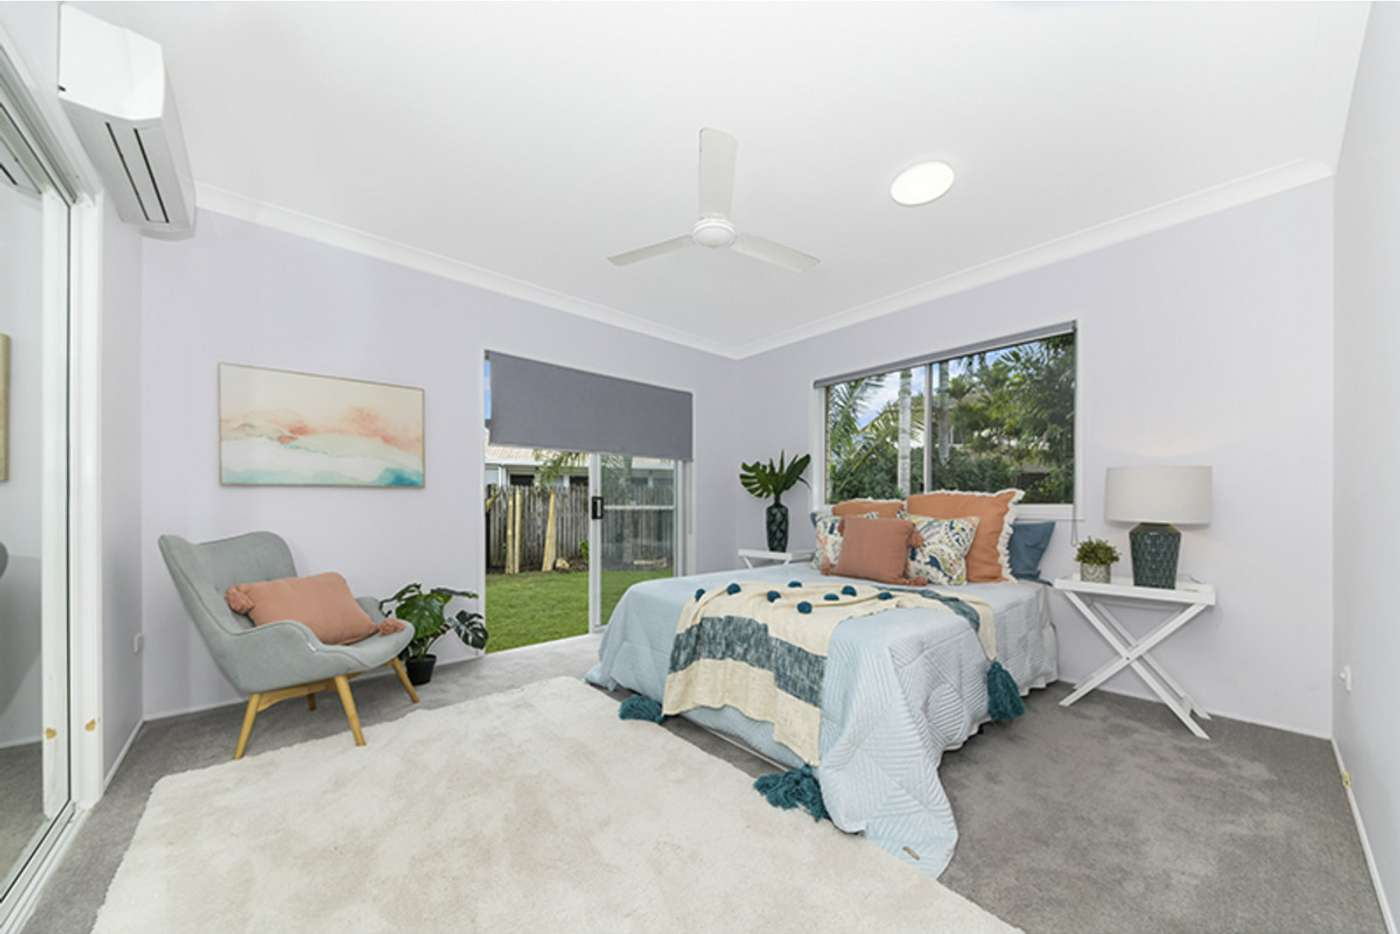 Seventh view of Homely house listing, 2 Dianella Court, Annandale QLD 4814